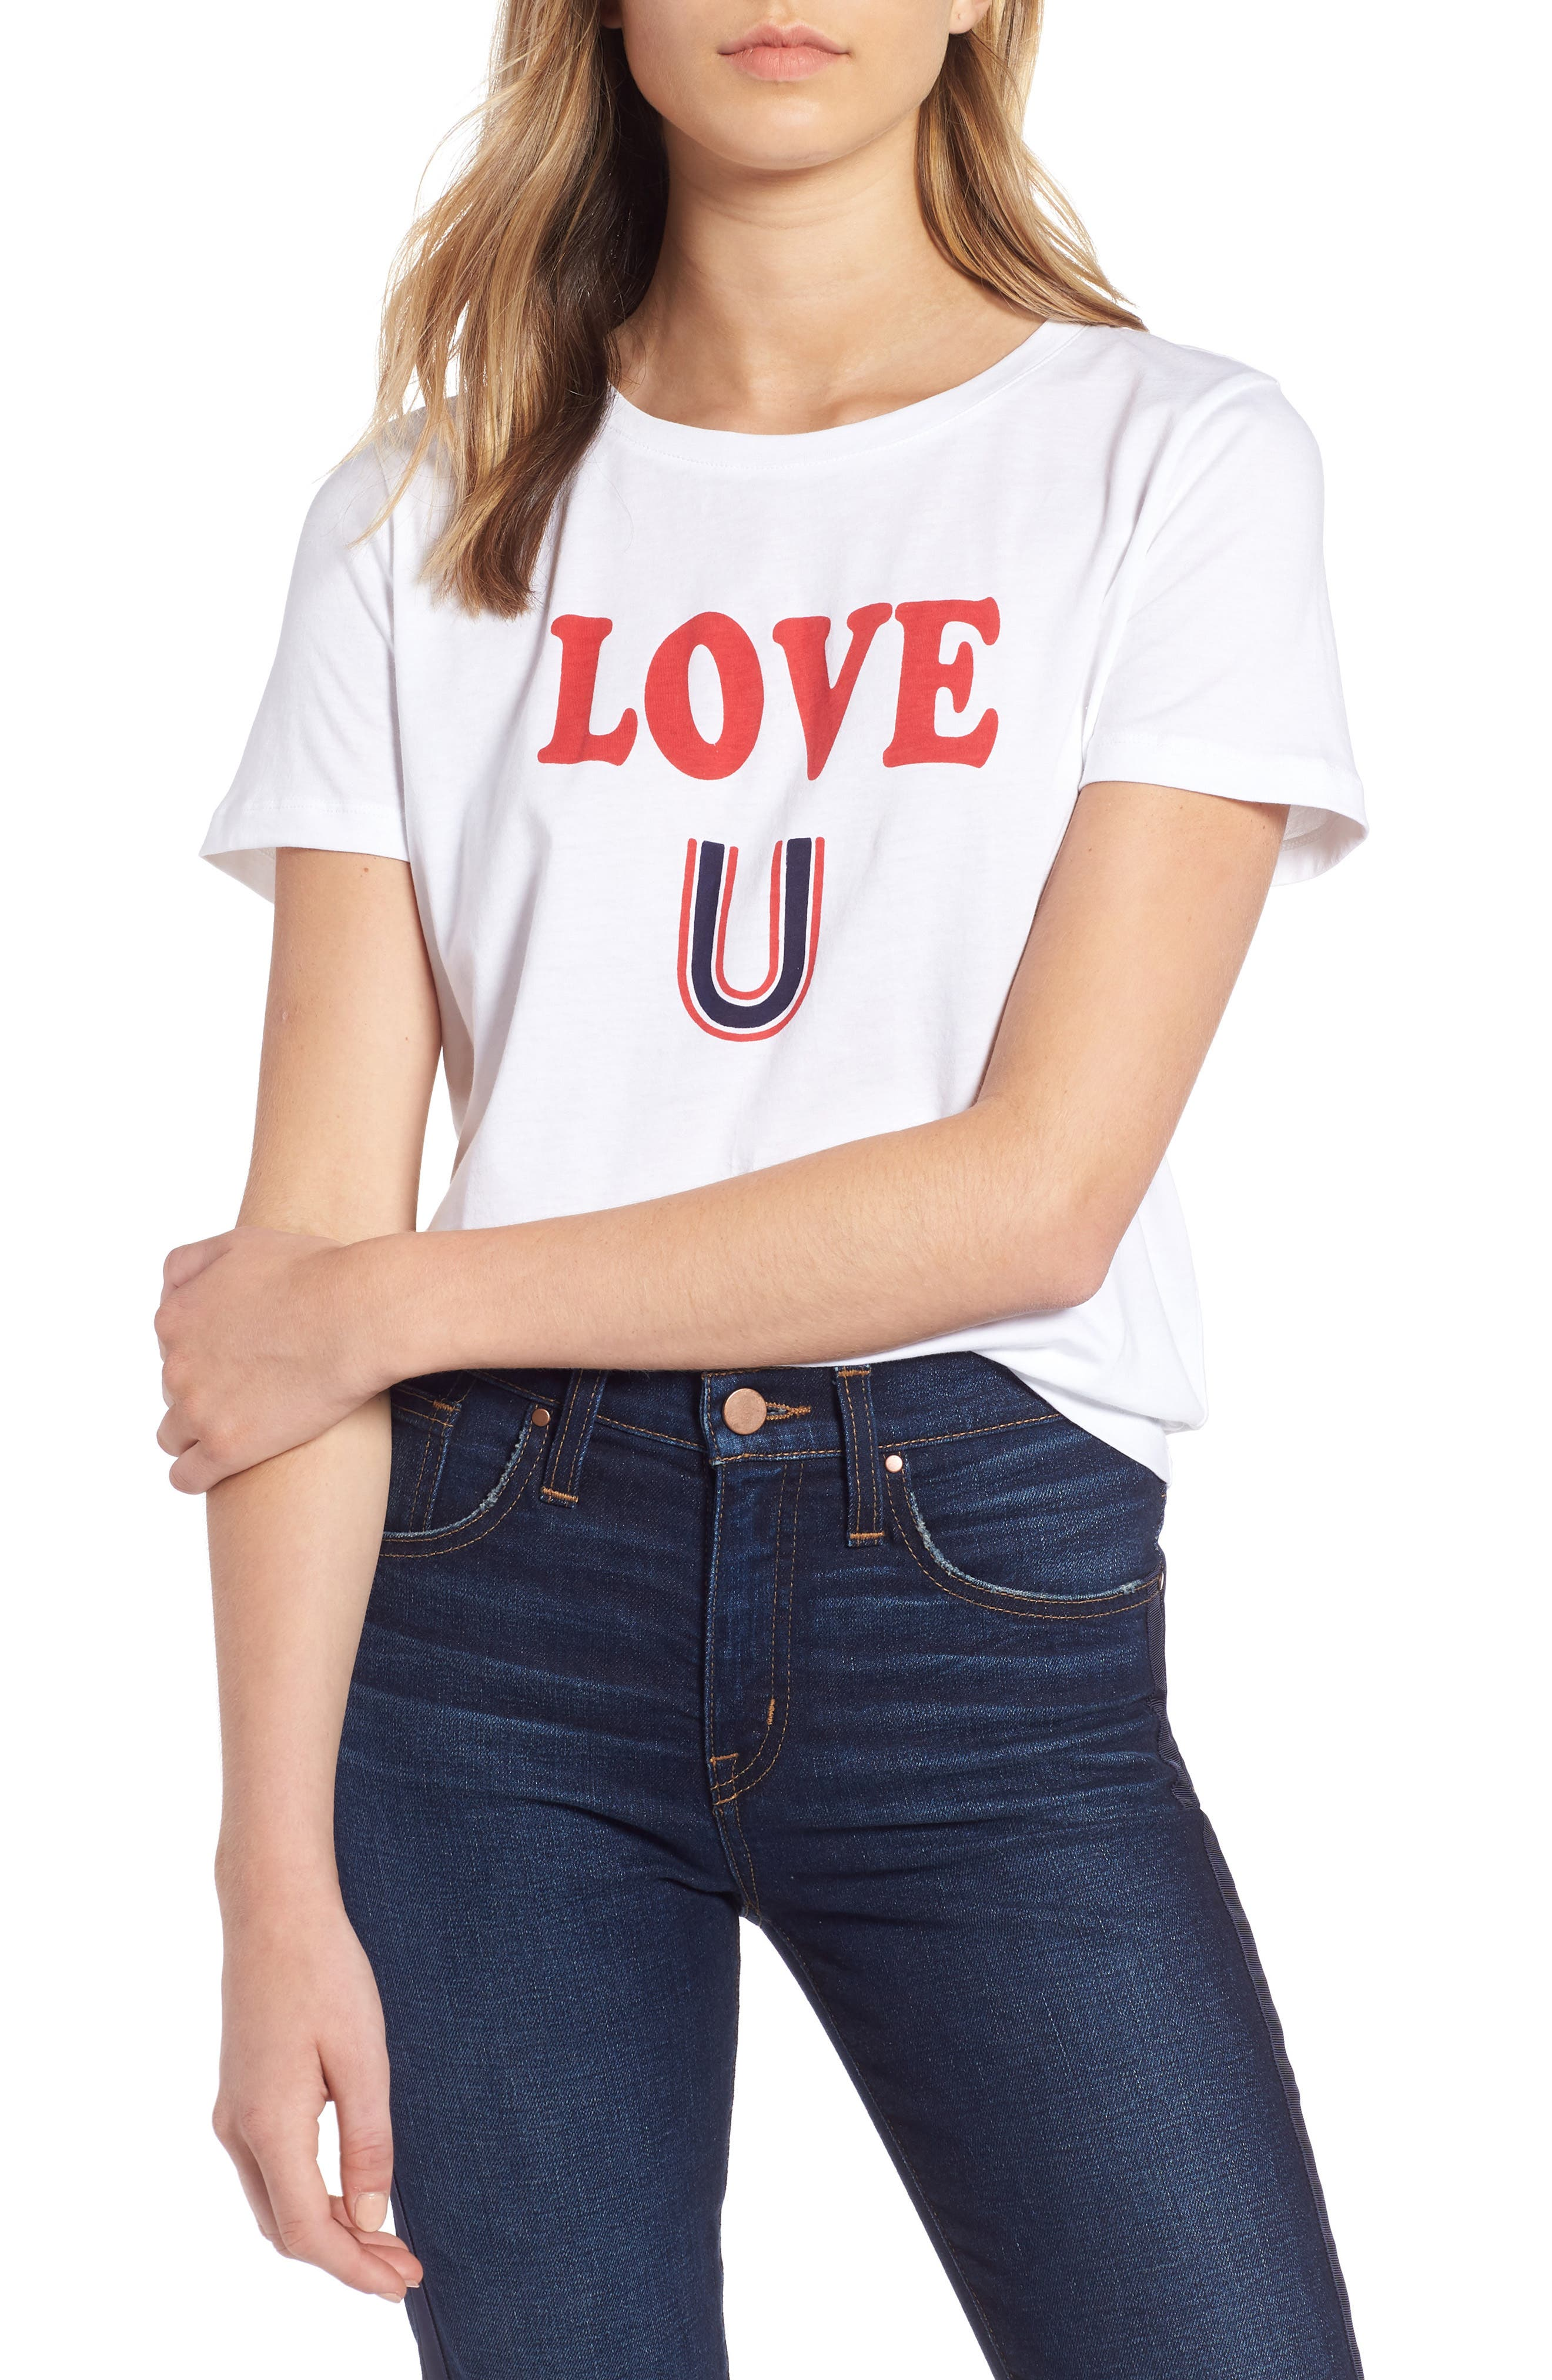 Short Sleeve Graphic Tee,                         Main,                         color, WHITE- RED LOVE U